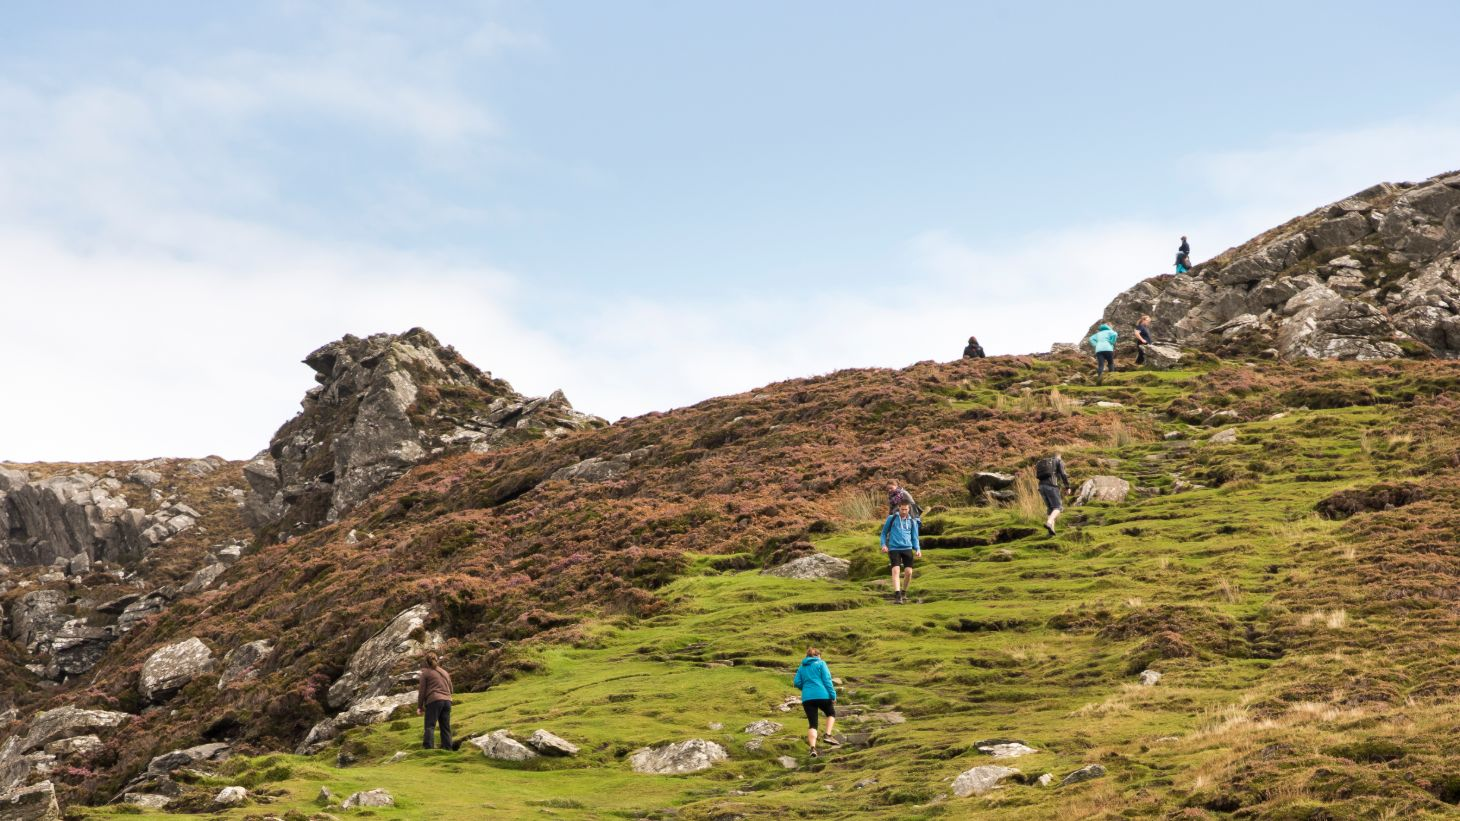 Start your hike of the Appalachian Trail at the Slieve League (Sliabh Liag) cliffs.